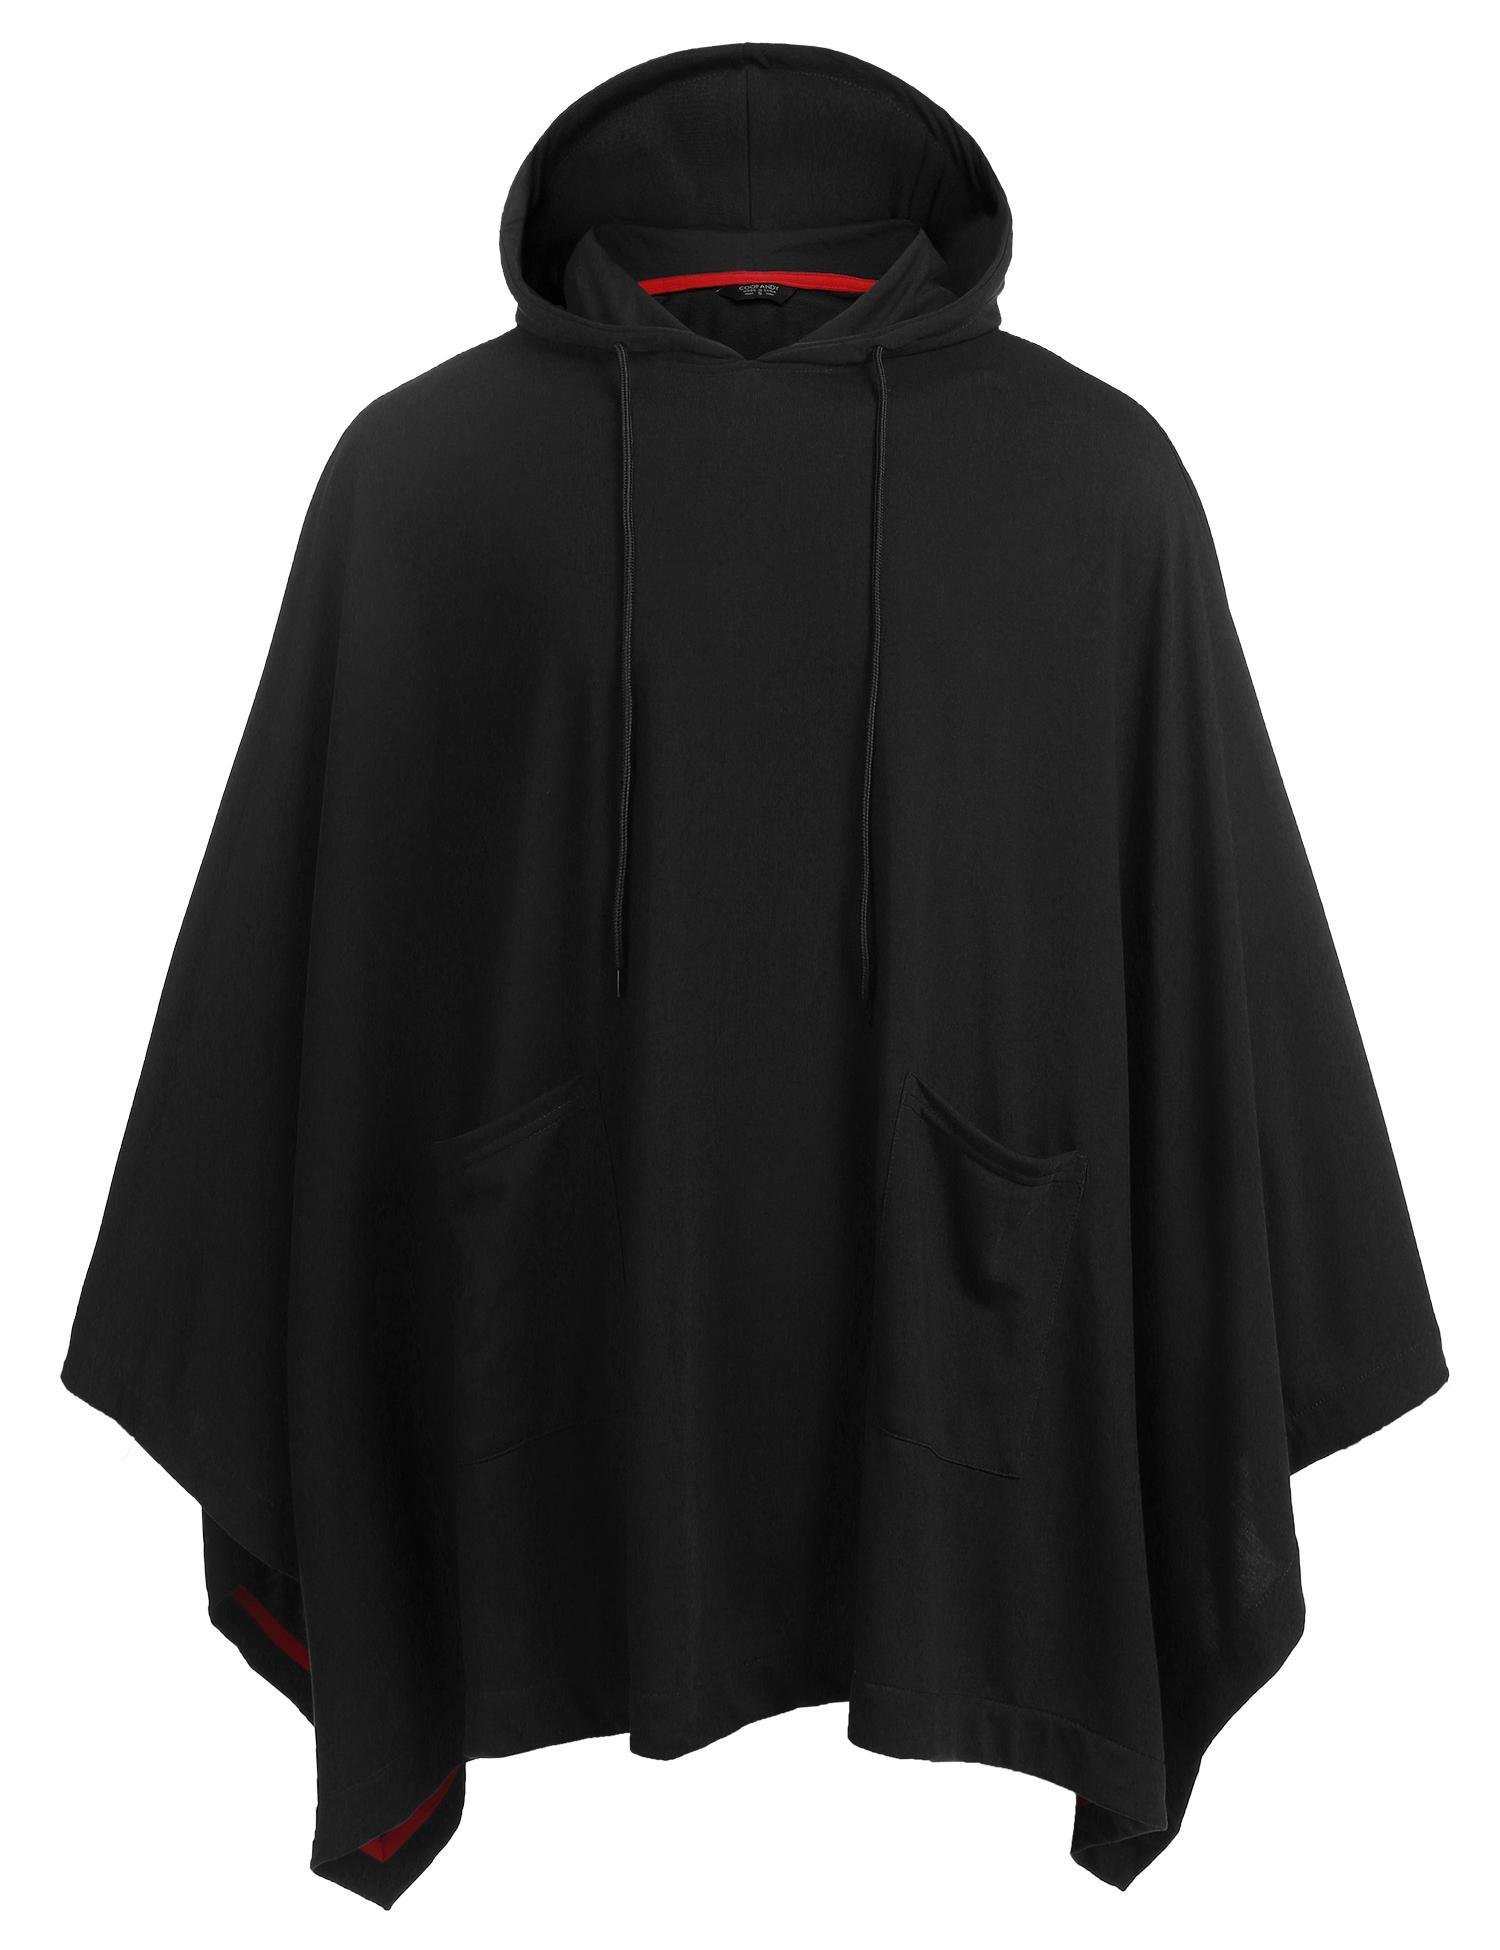 Coofandy Unisex Casual Hooded Cloak Poncho Cape Coat with Pocket Black Medium